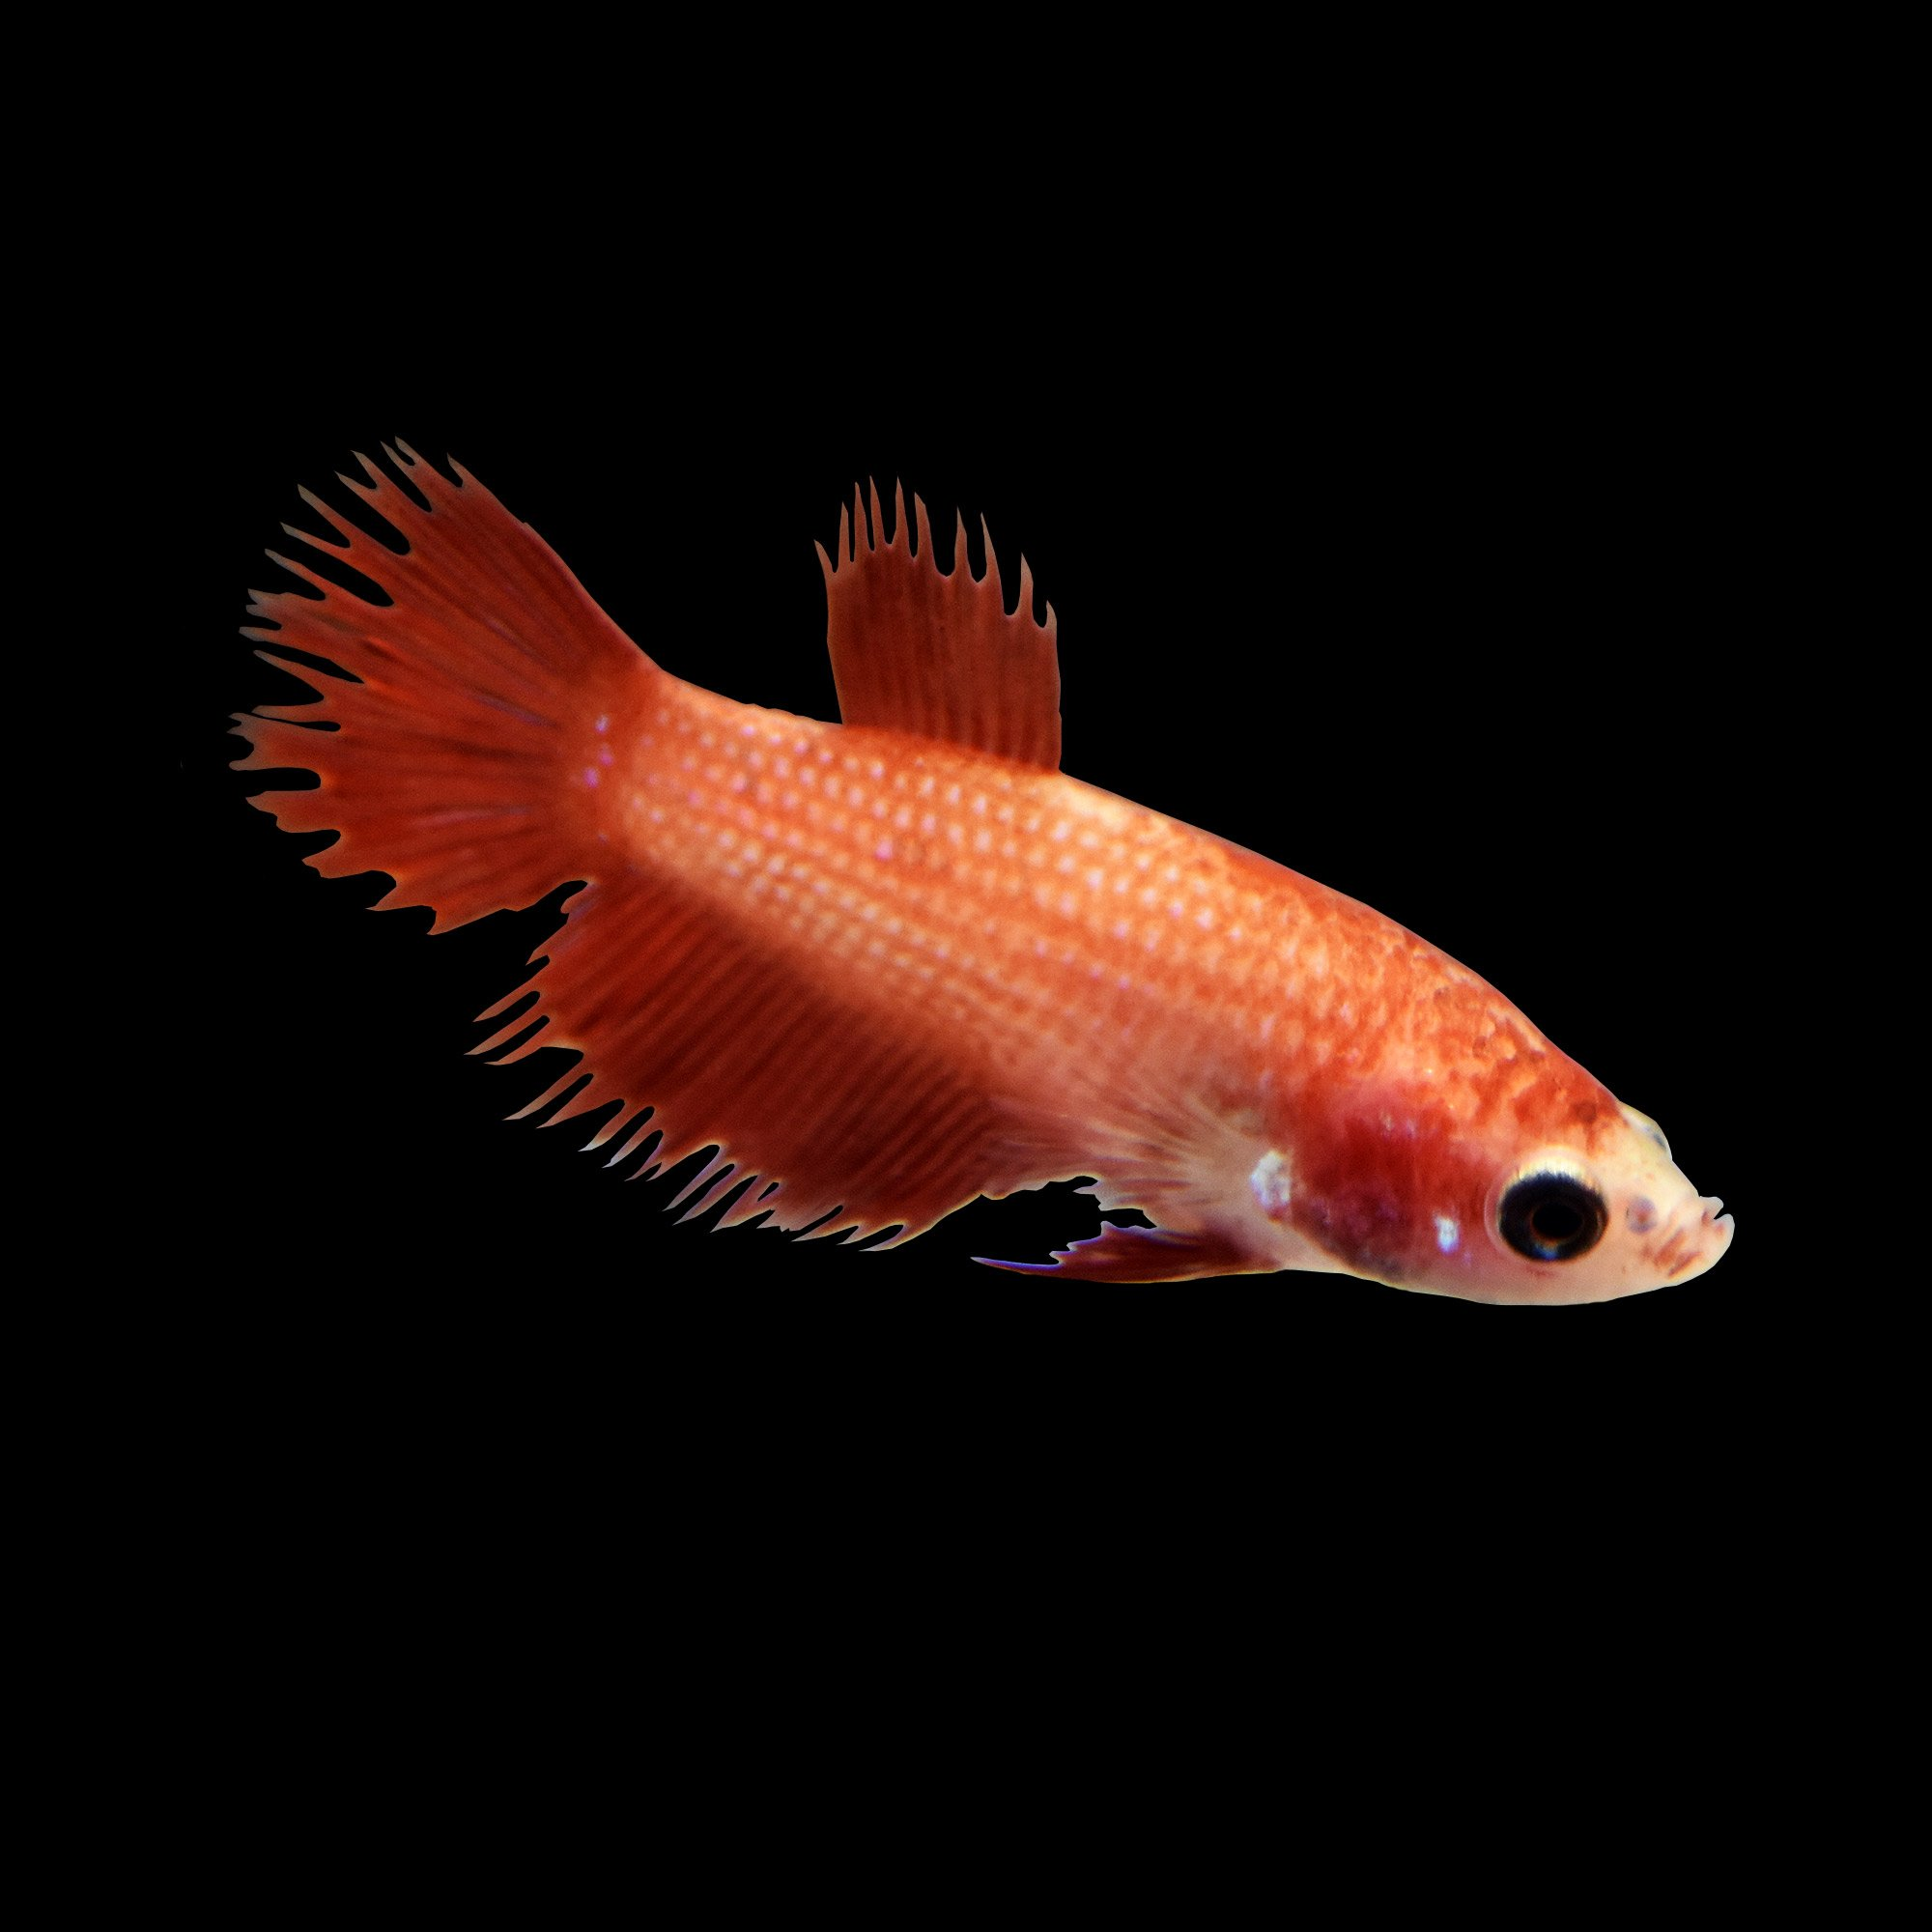 Red female crowntail betta fish petco for Types of betta fish petco